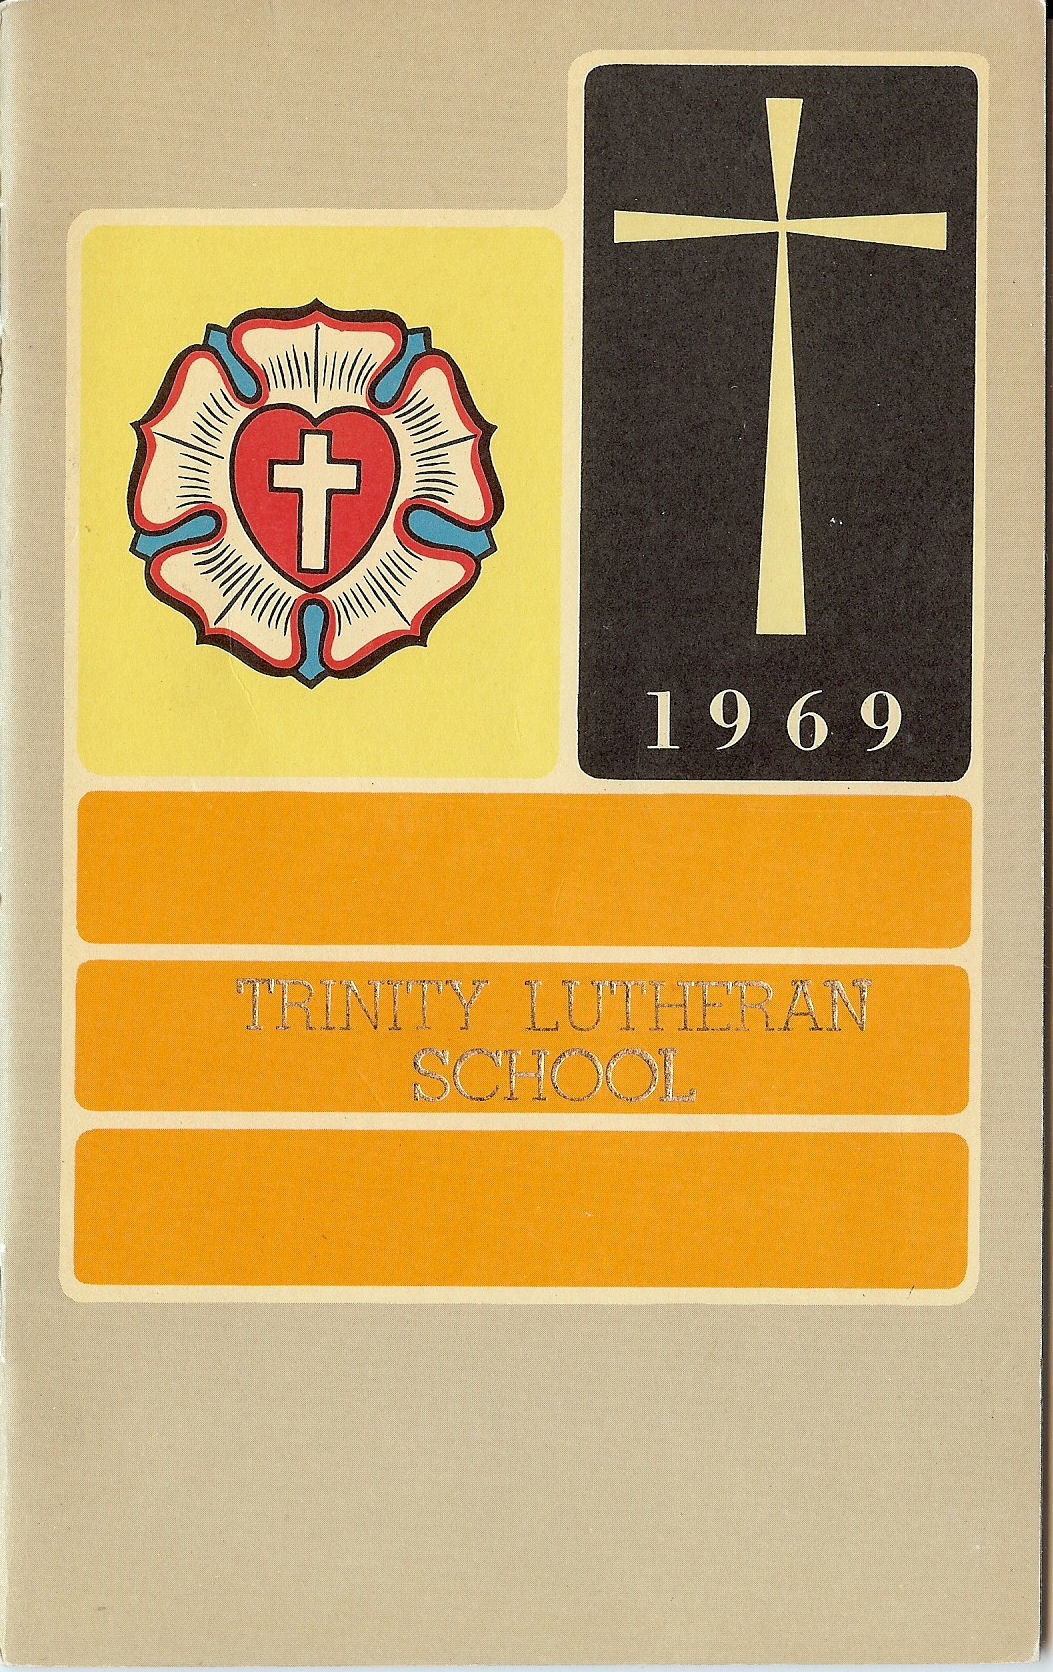 68-69 Yearbook Cover